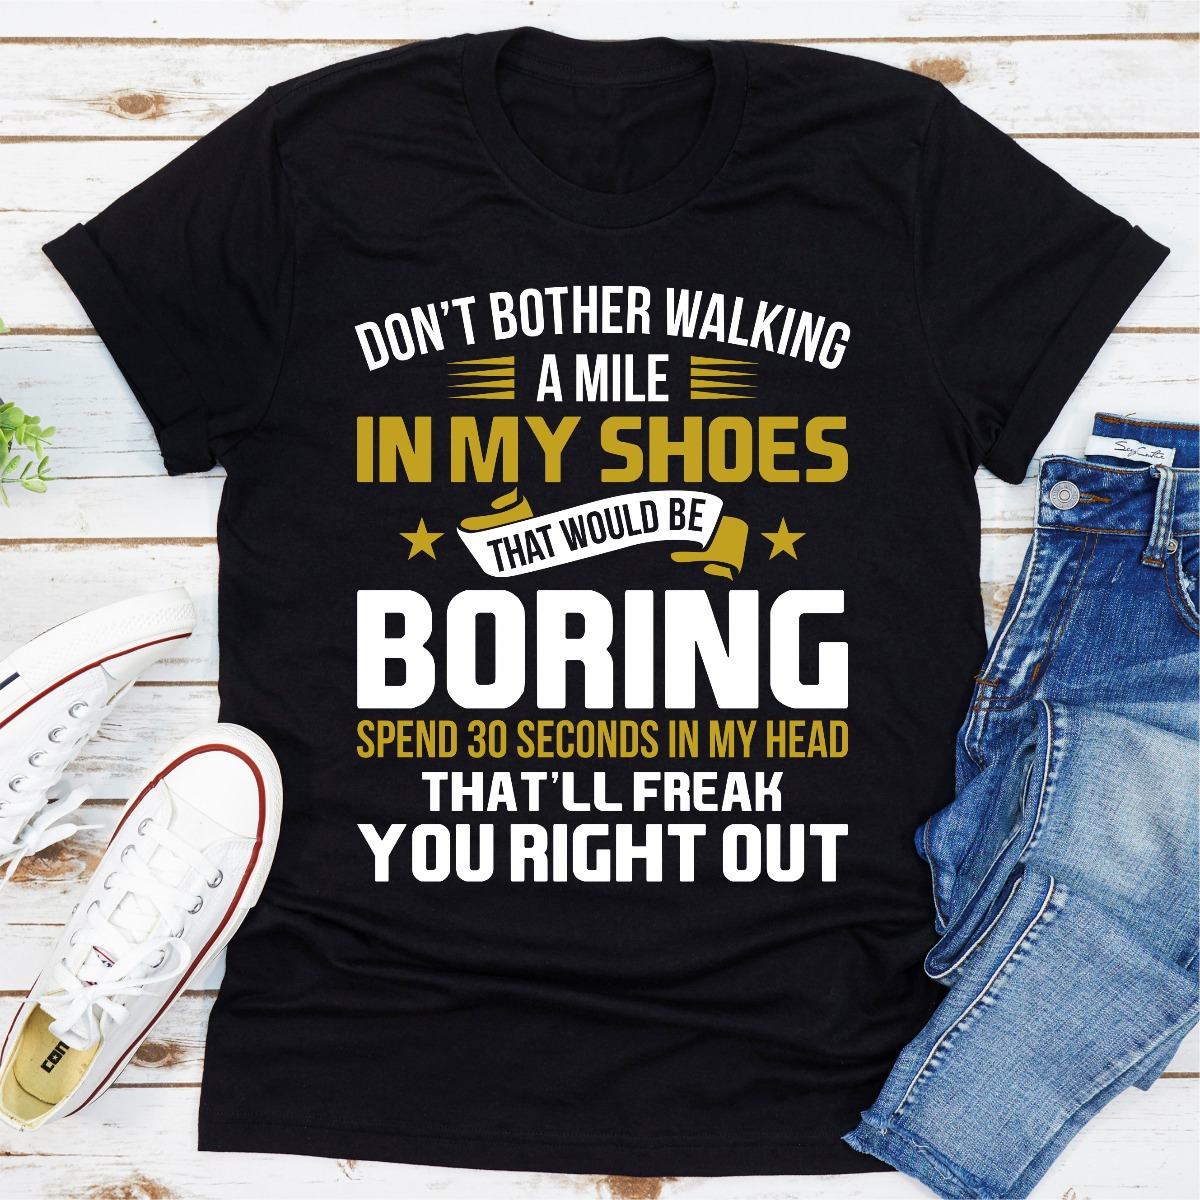 Don't Bother Walking A Mile In My Shoes (Black / Xl)